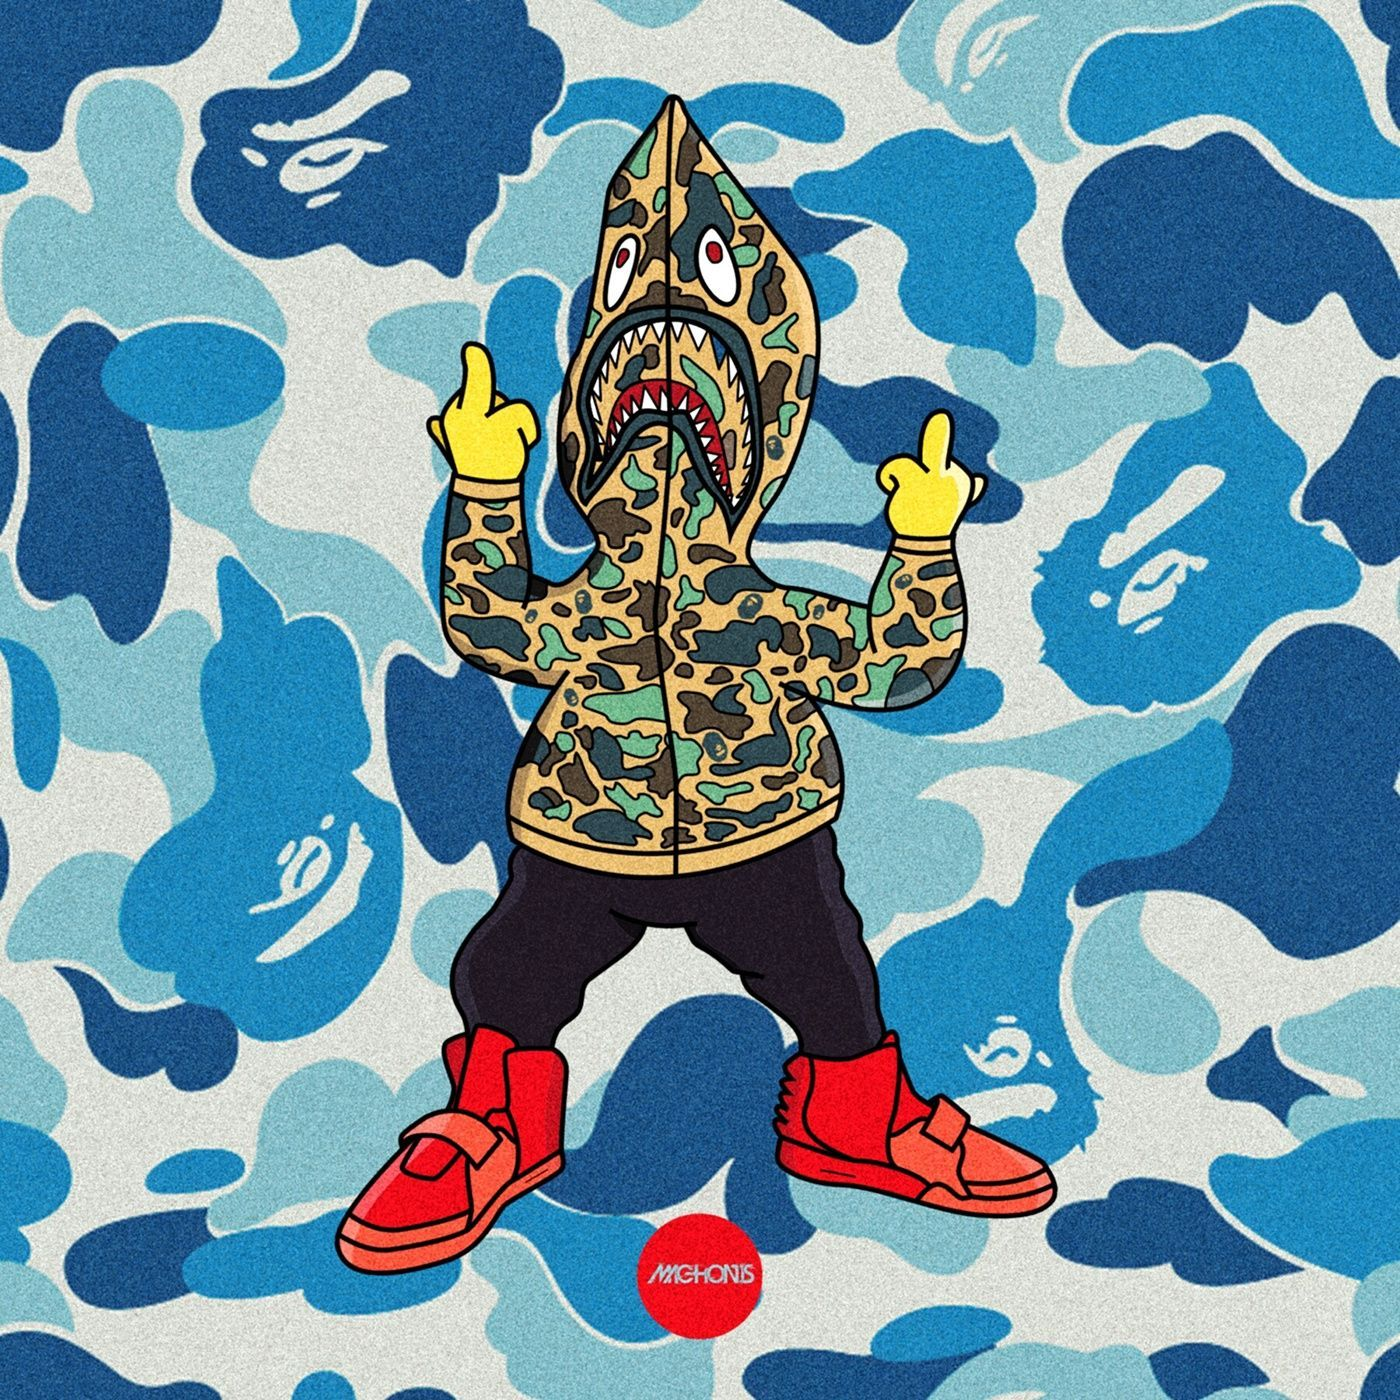 1400x1400 Pin by aka.brodie on Bart simpsons | Dope art, Dope wallpapers, Art